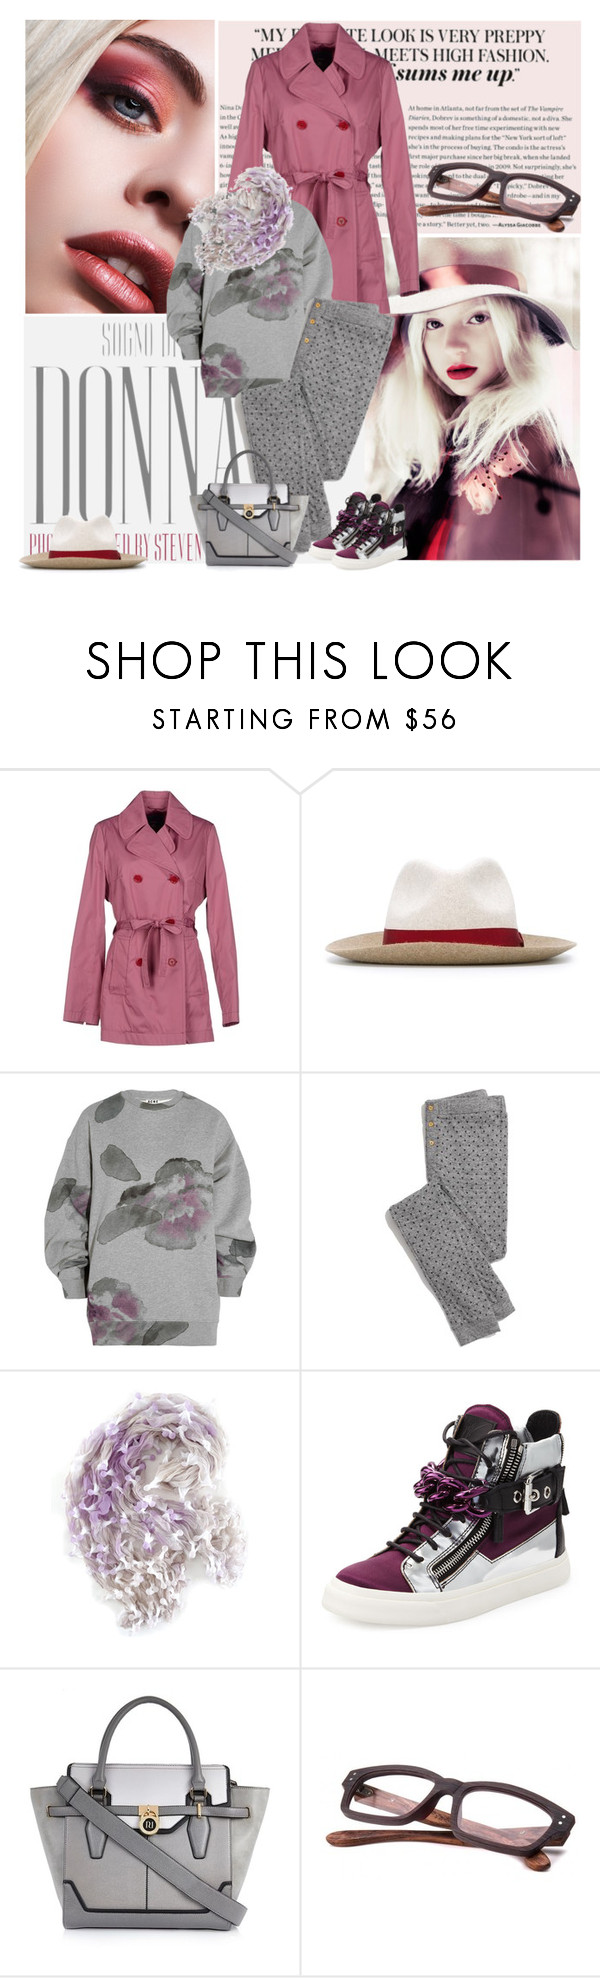 """DONNA"" by fashion-mariquita-camy ❤ liked on Polyvore featuring FAY, Lanvin, Acne Studios, Madewell, Yuh Okano, Giuseppe Zanotti and River Island"